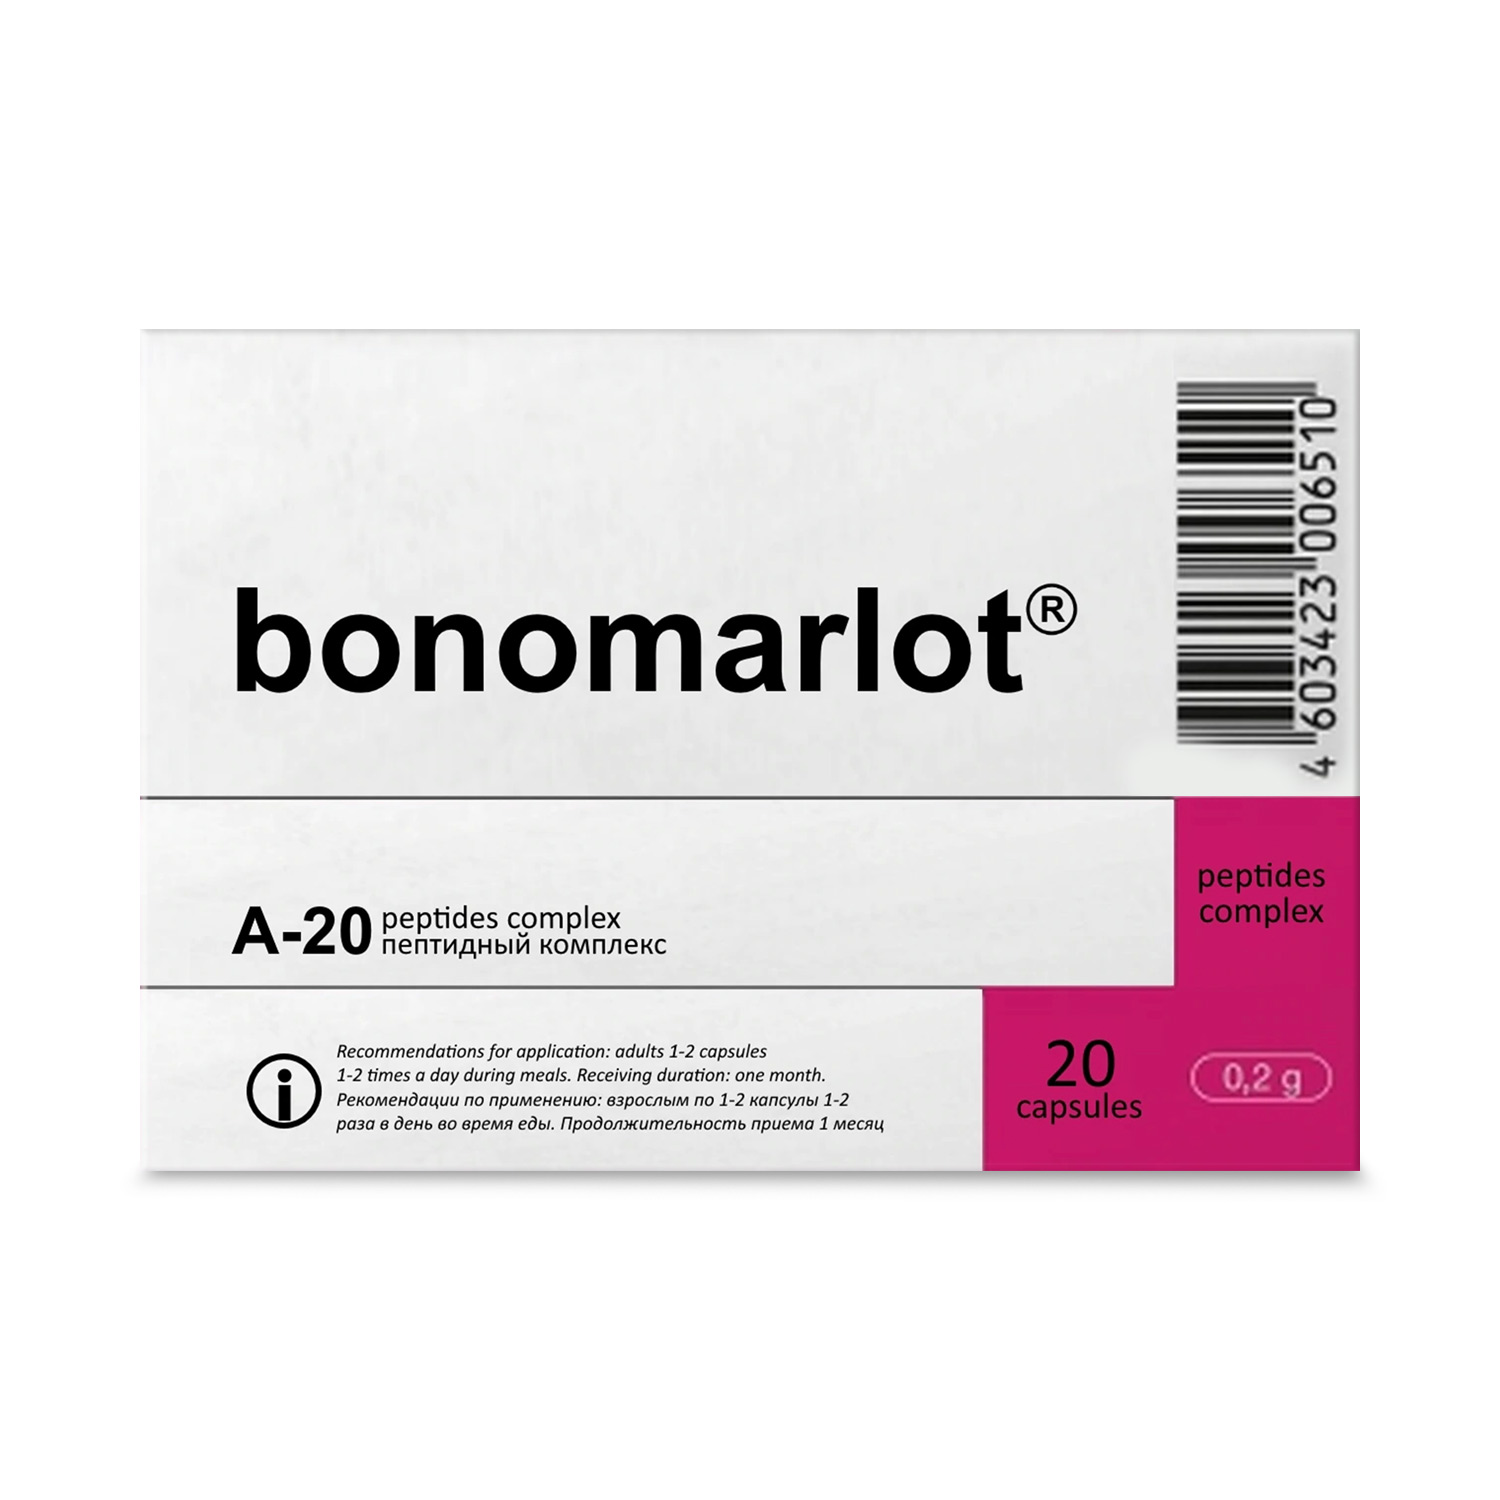 Bone Marrow Peptide (Bonomarlot)